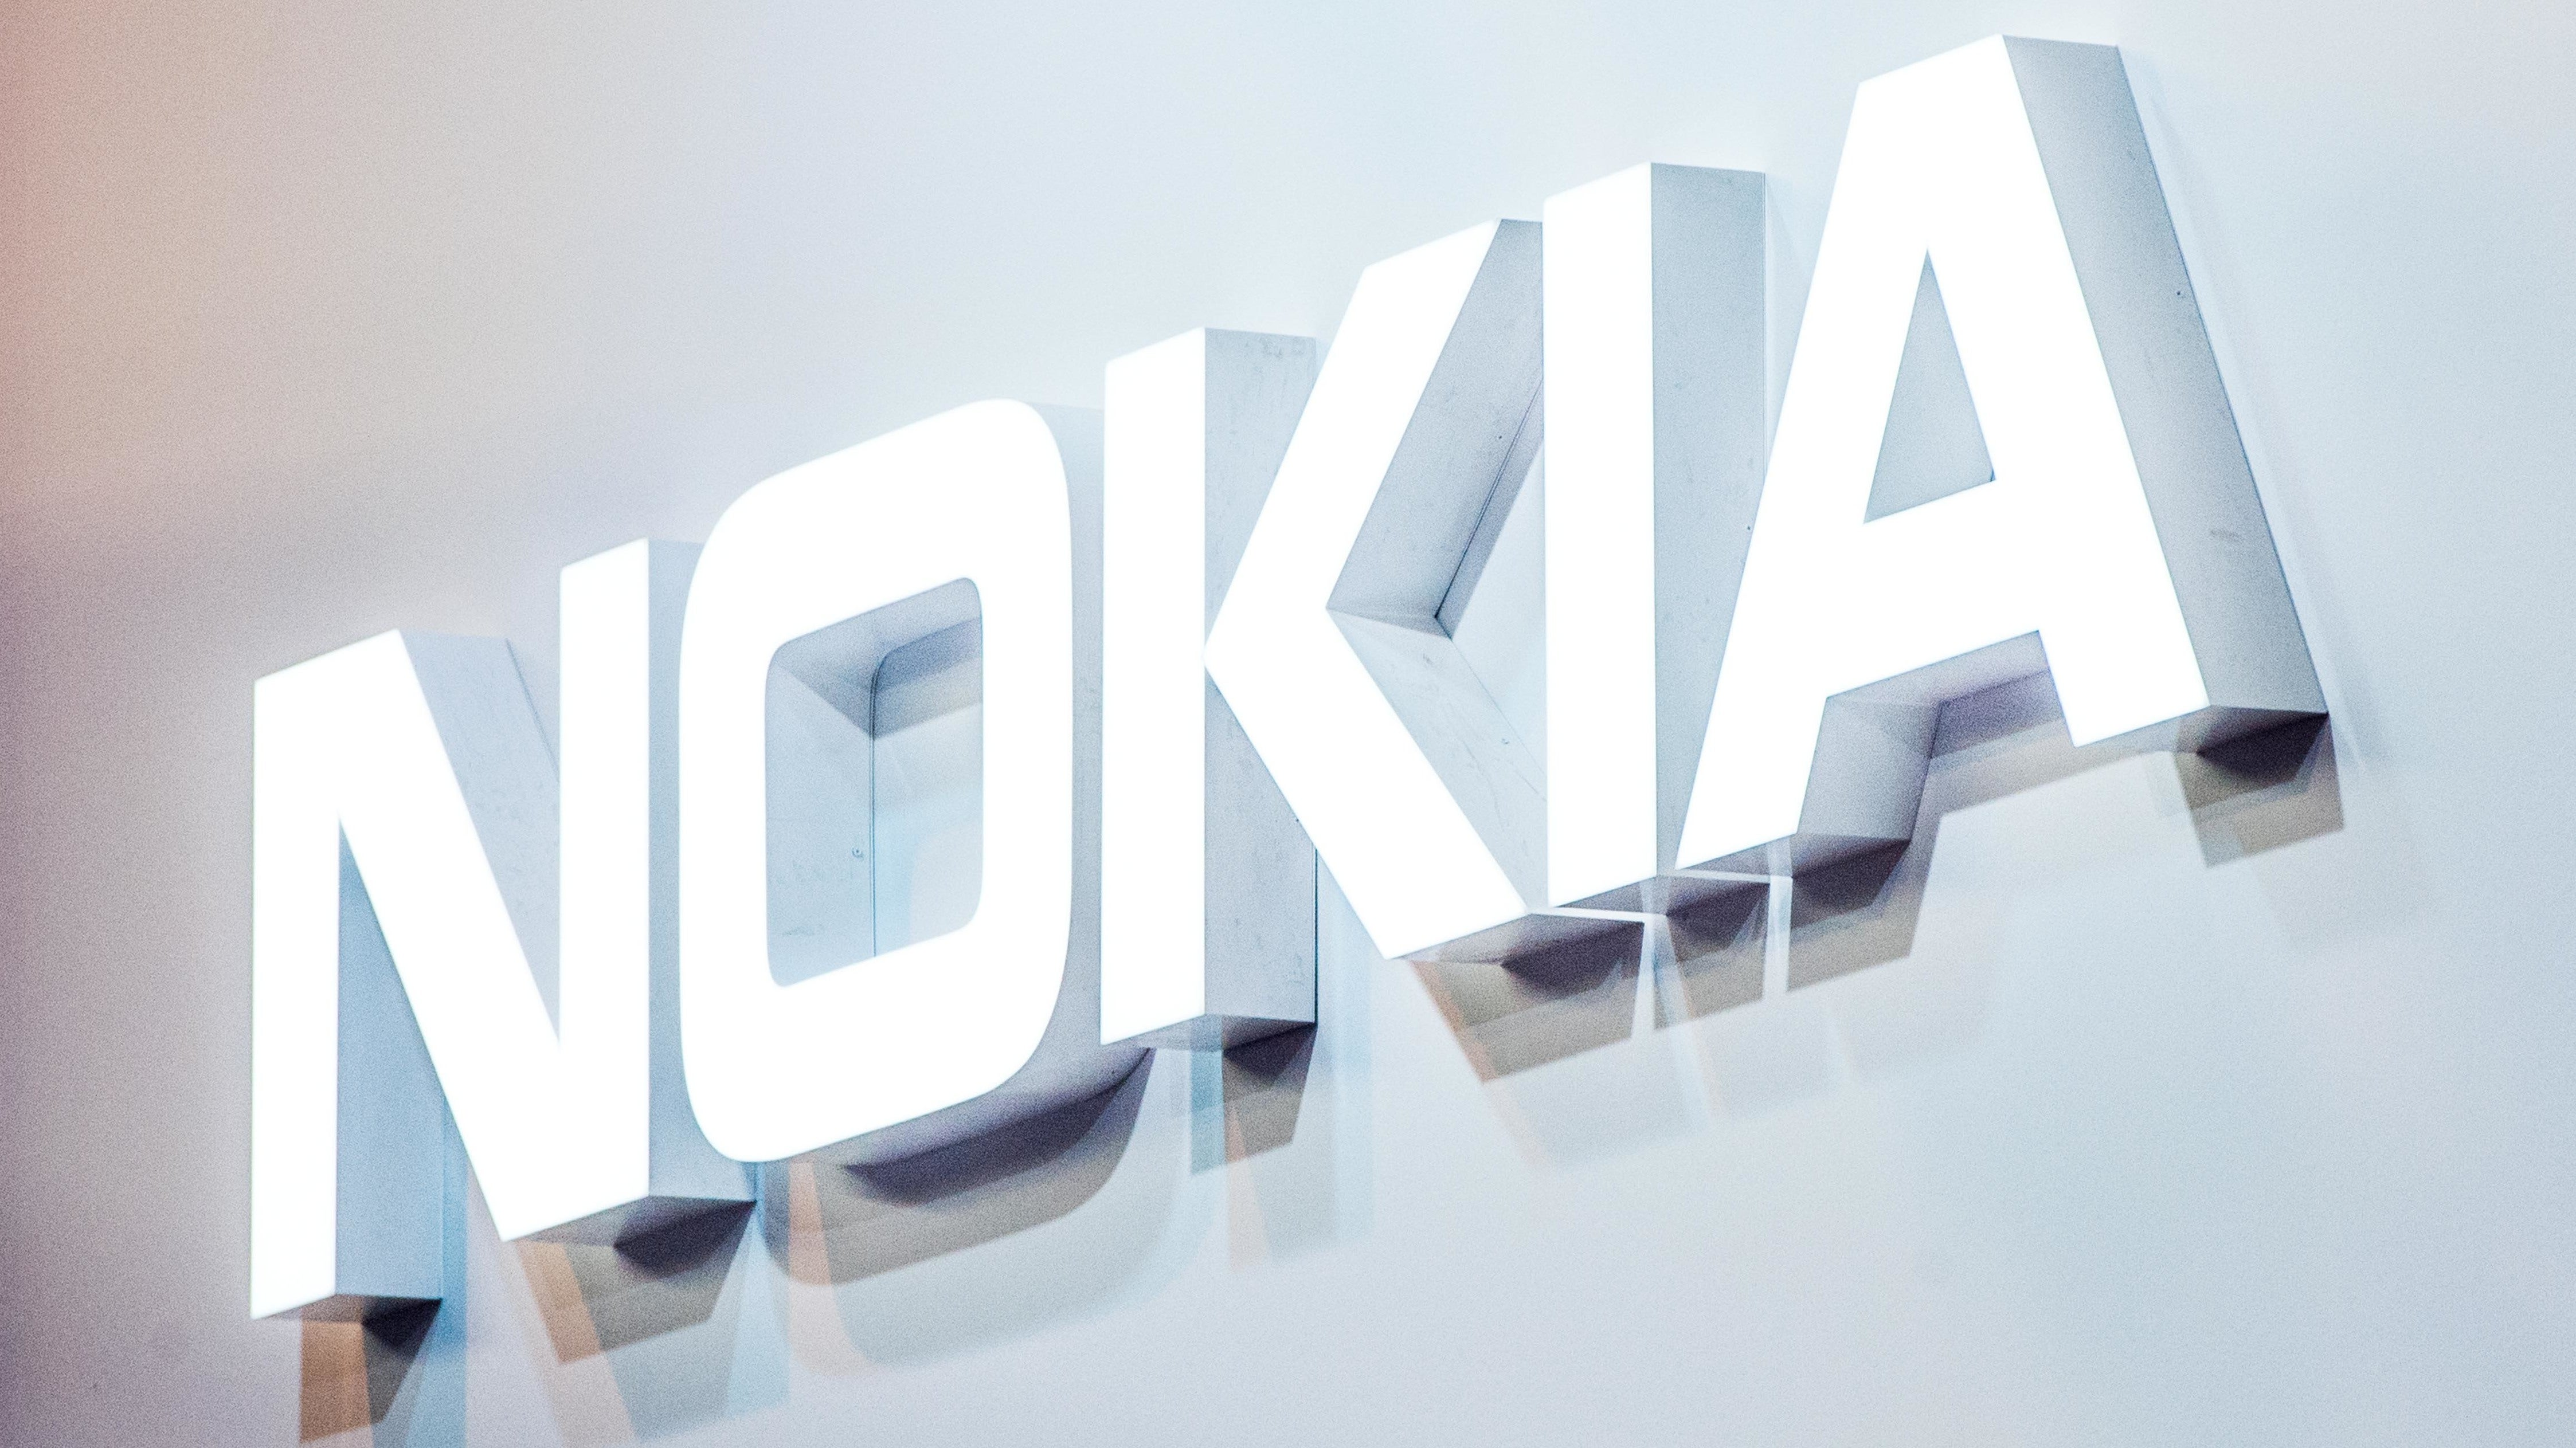 This Alleged Nokia Leak Has Me Eager For Five-Lens Smartphones